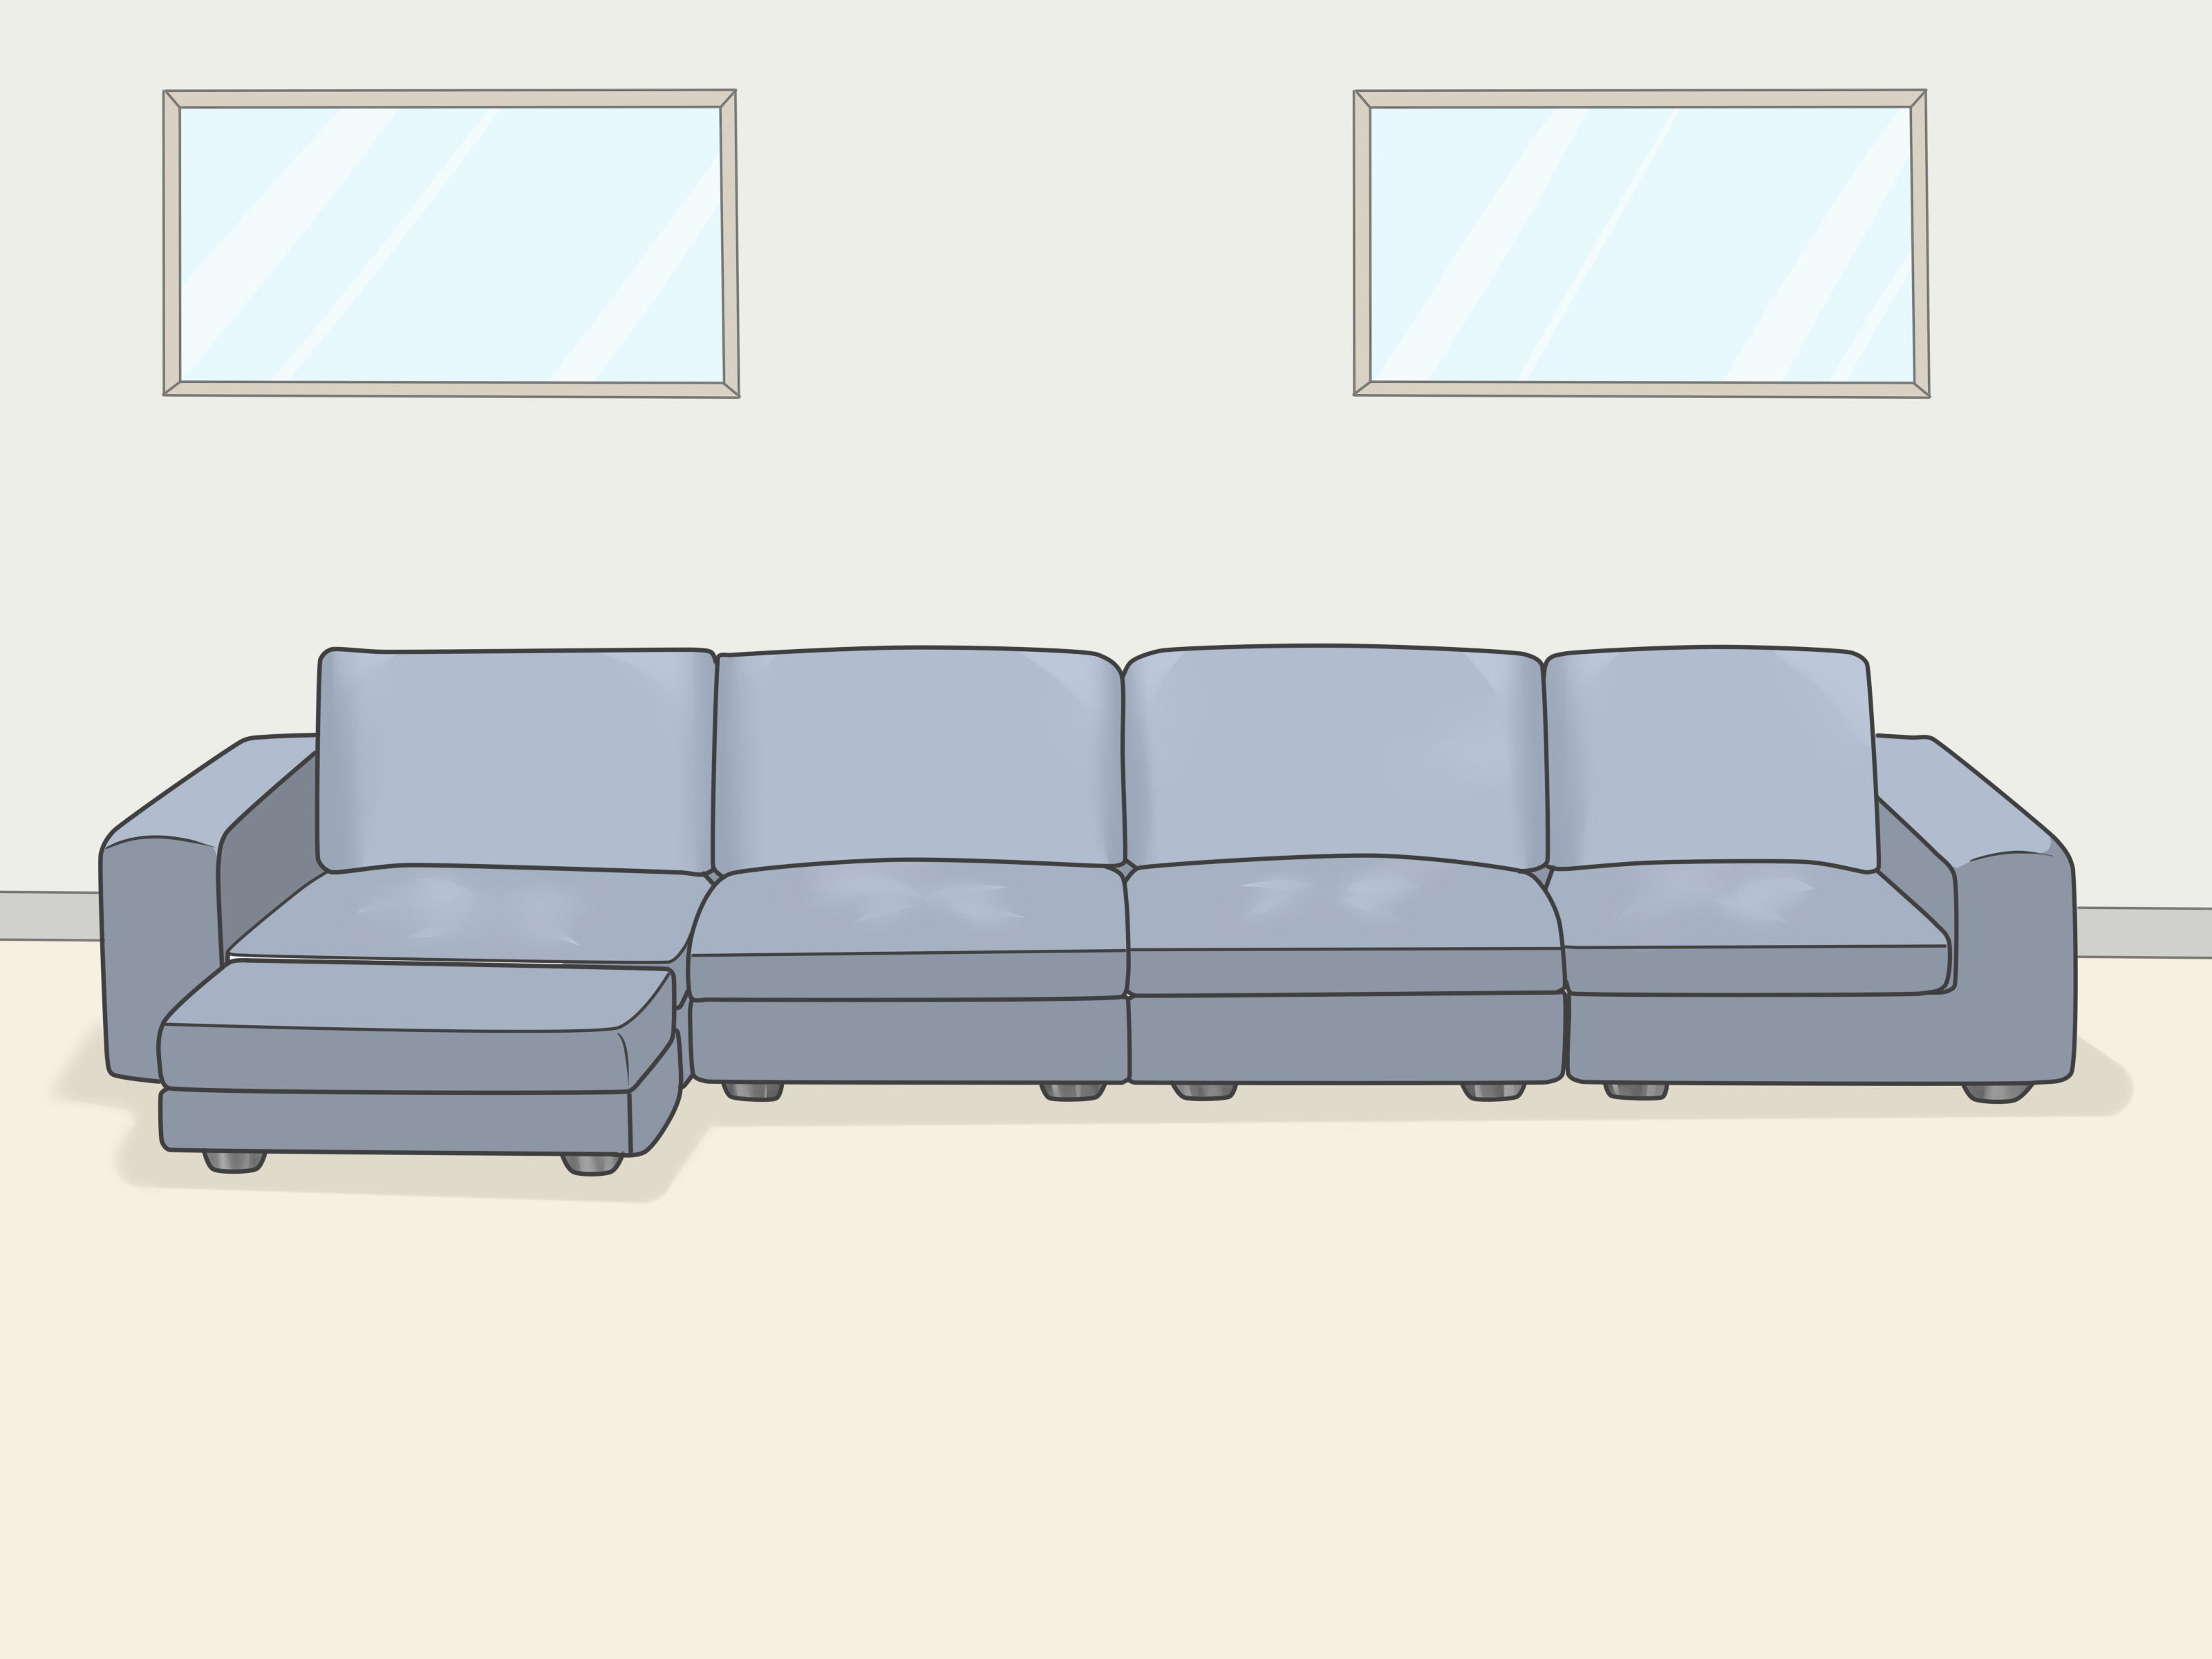 How To Separate A Sectional Sofa 9 Steps With Pictures